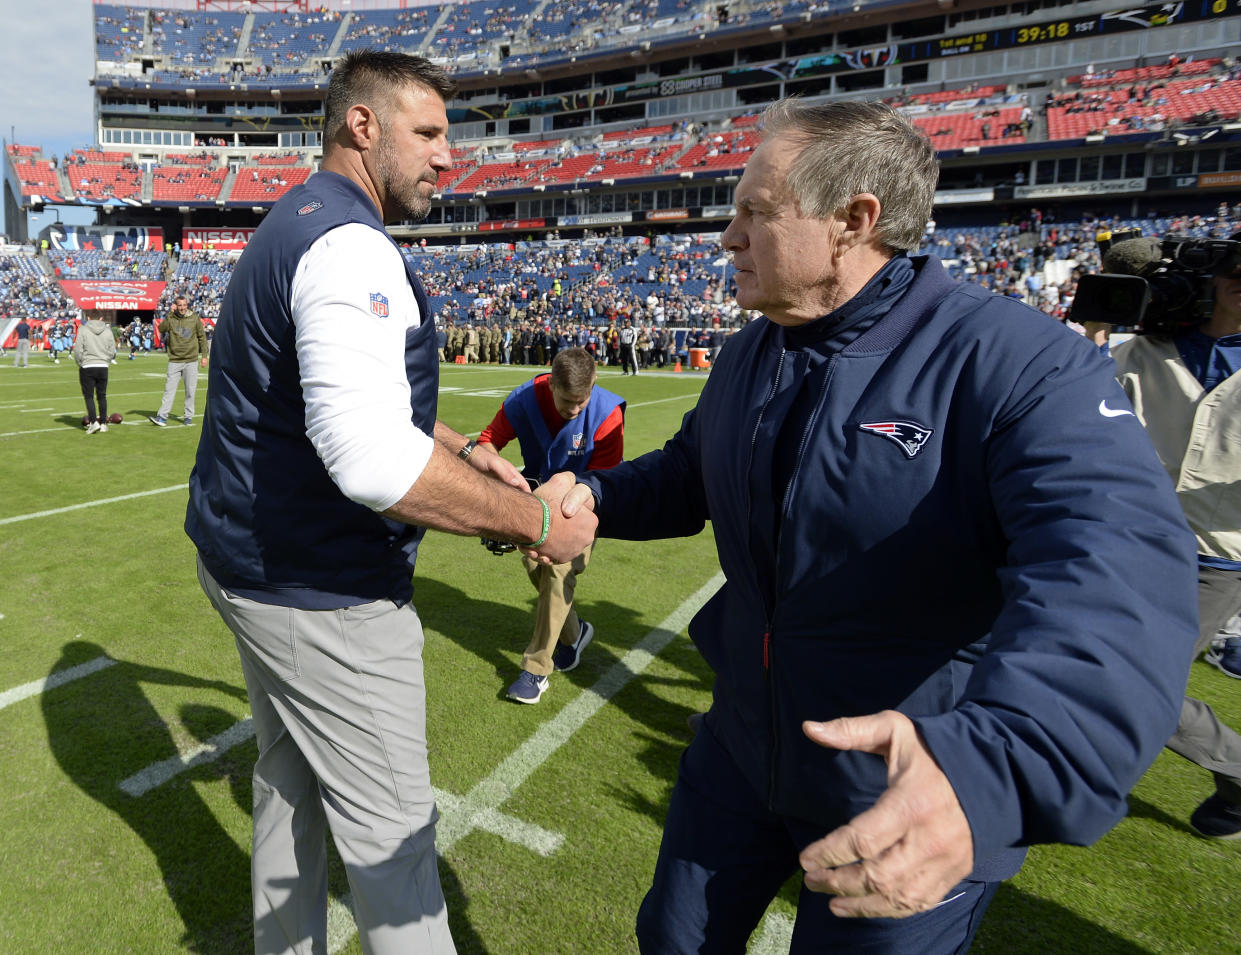 Tennessee Titans head coach Mike Vrabel, left, greets New England Patriots head coach Bill Belichick before last week's game. (AP)